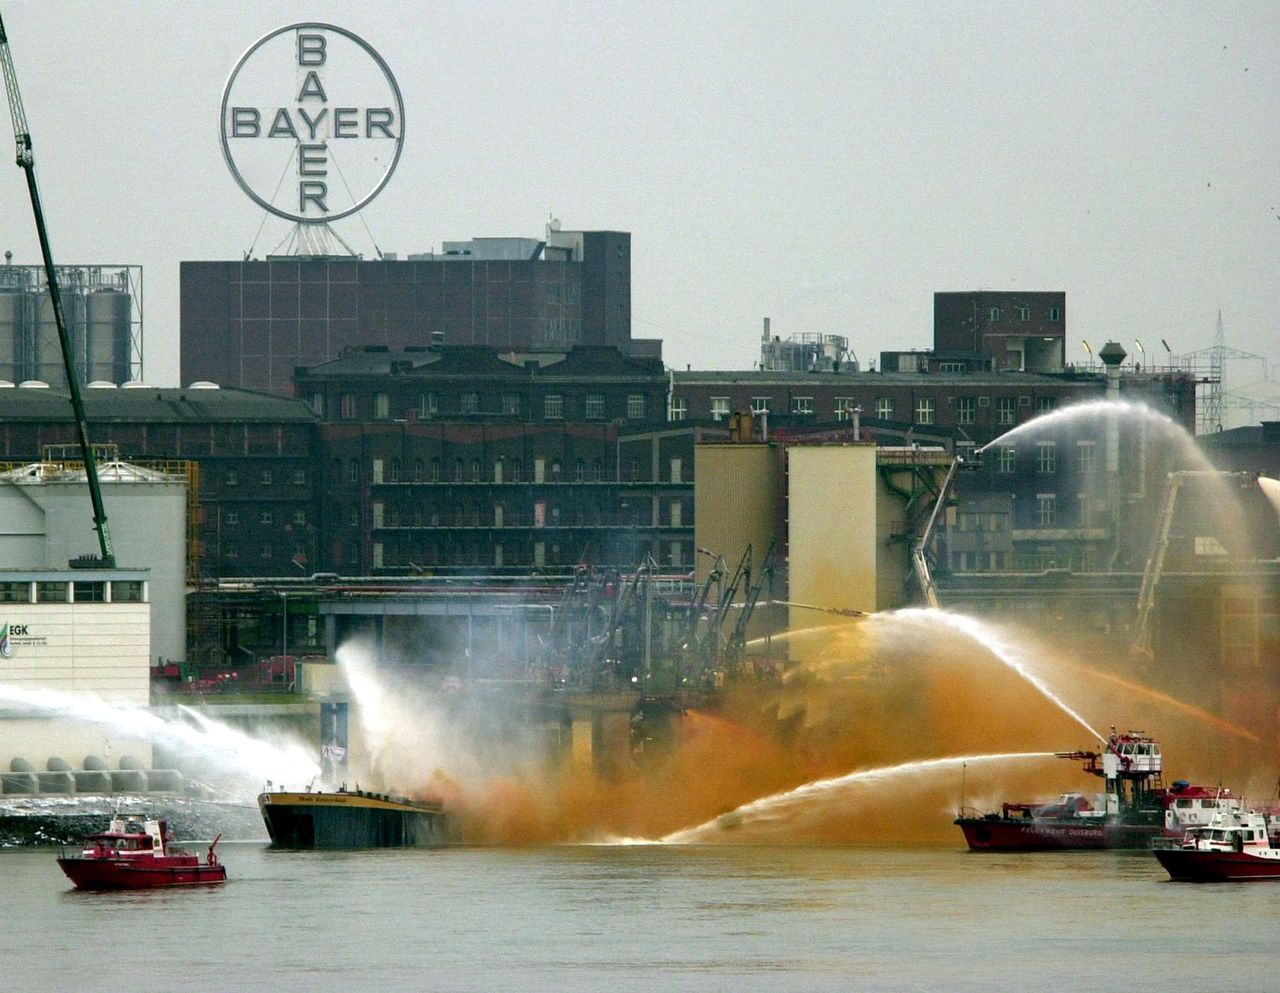 Firemen struggle to prevent a burning chemical tanker ship from leaking its entire 1,800 tonnes load of highly corrosive nitric acid into the Rhine at Krefeld 21 November 2001. A quantity of nitric acid has already escaped in the form of fumes from the Netherlands-registered Stolt Rotterdam, which began leaking and caught fire at the Bayer chemical company's wharf.